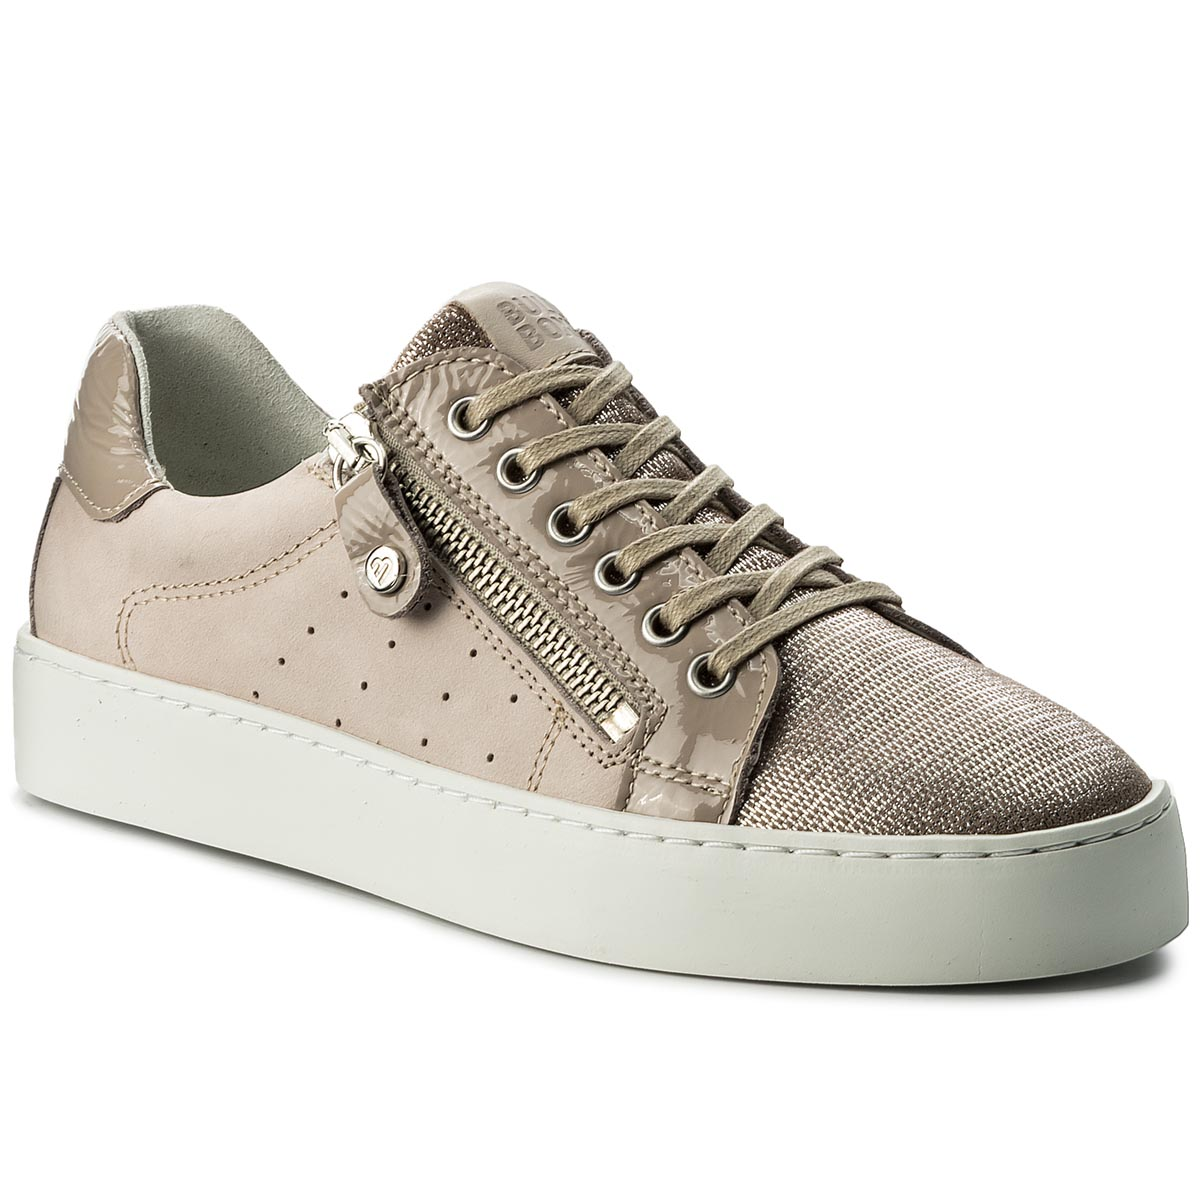 Sneakers BULLBOXER - 962006E5L TAUPTD70 Taupe/Skin/Beige